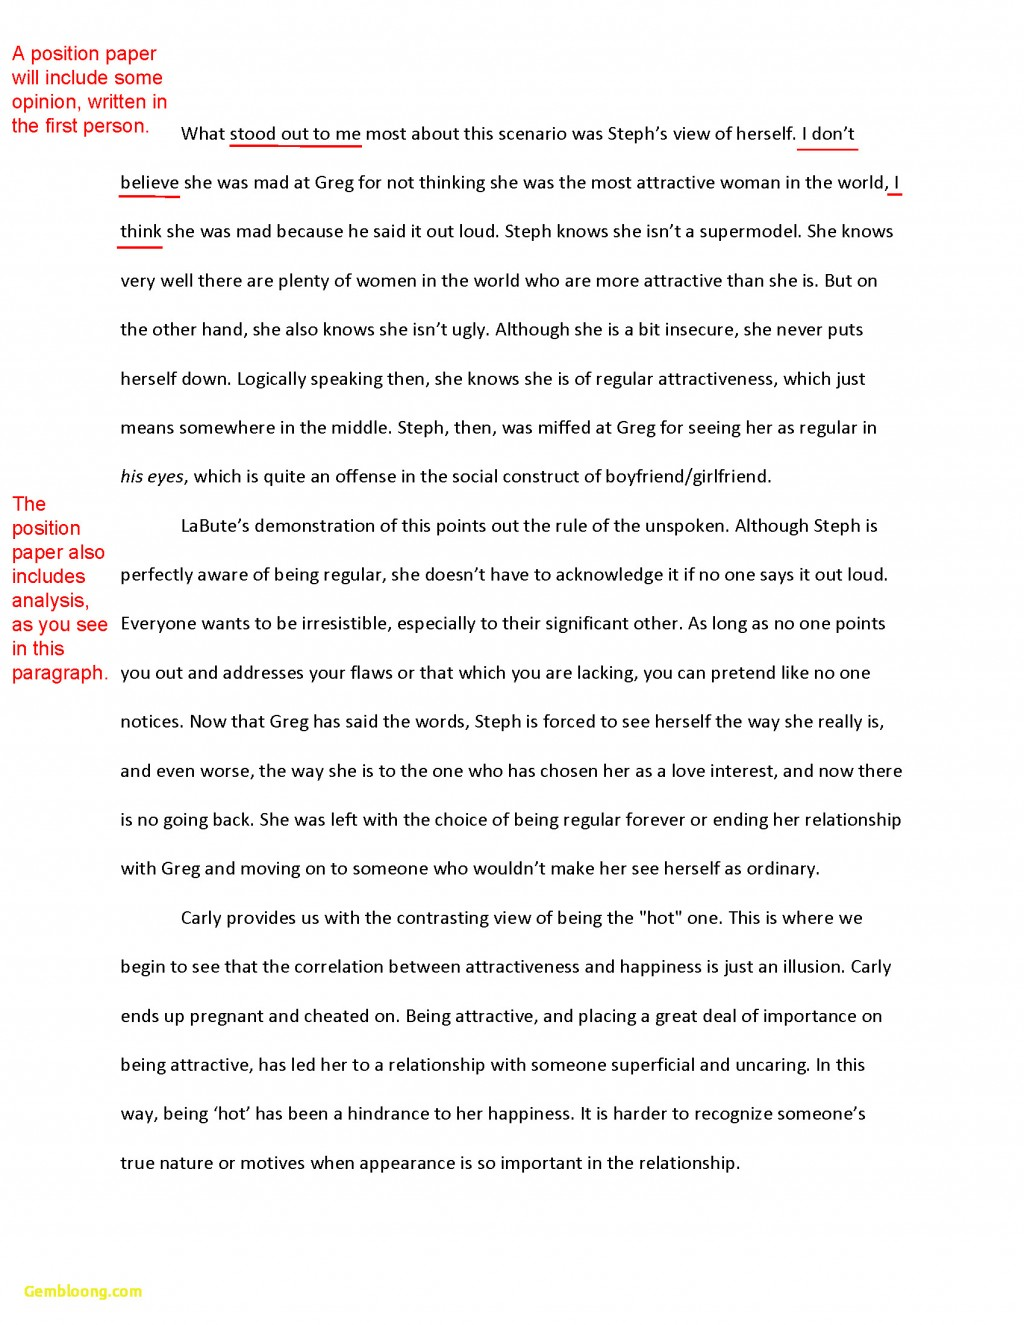 005 Apa Format Essay Example Sample New How To Write Response Paper Stupendous Citation Style Research 6th Edition Pdf Large